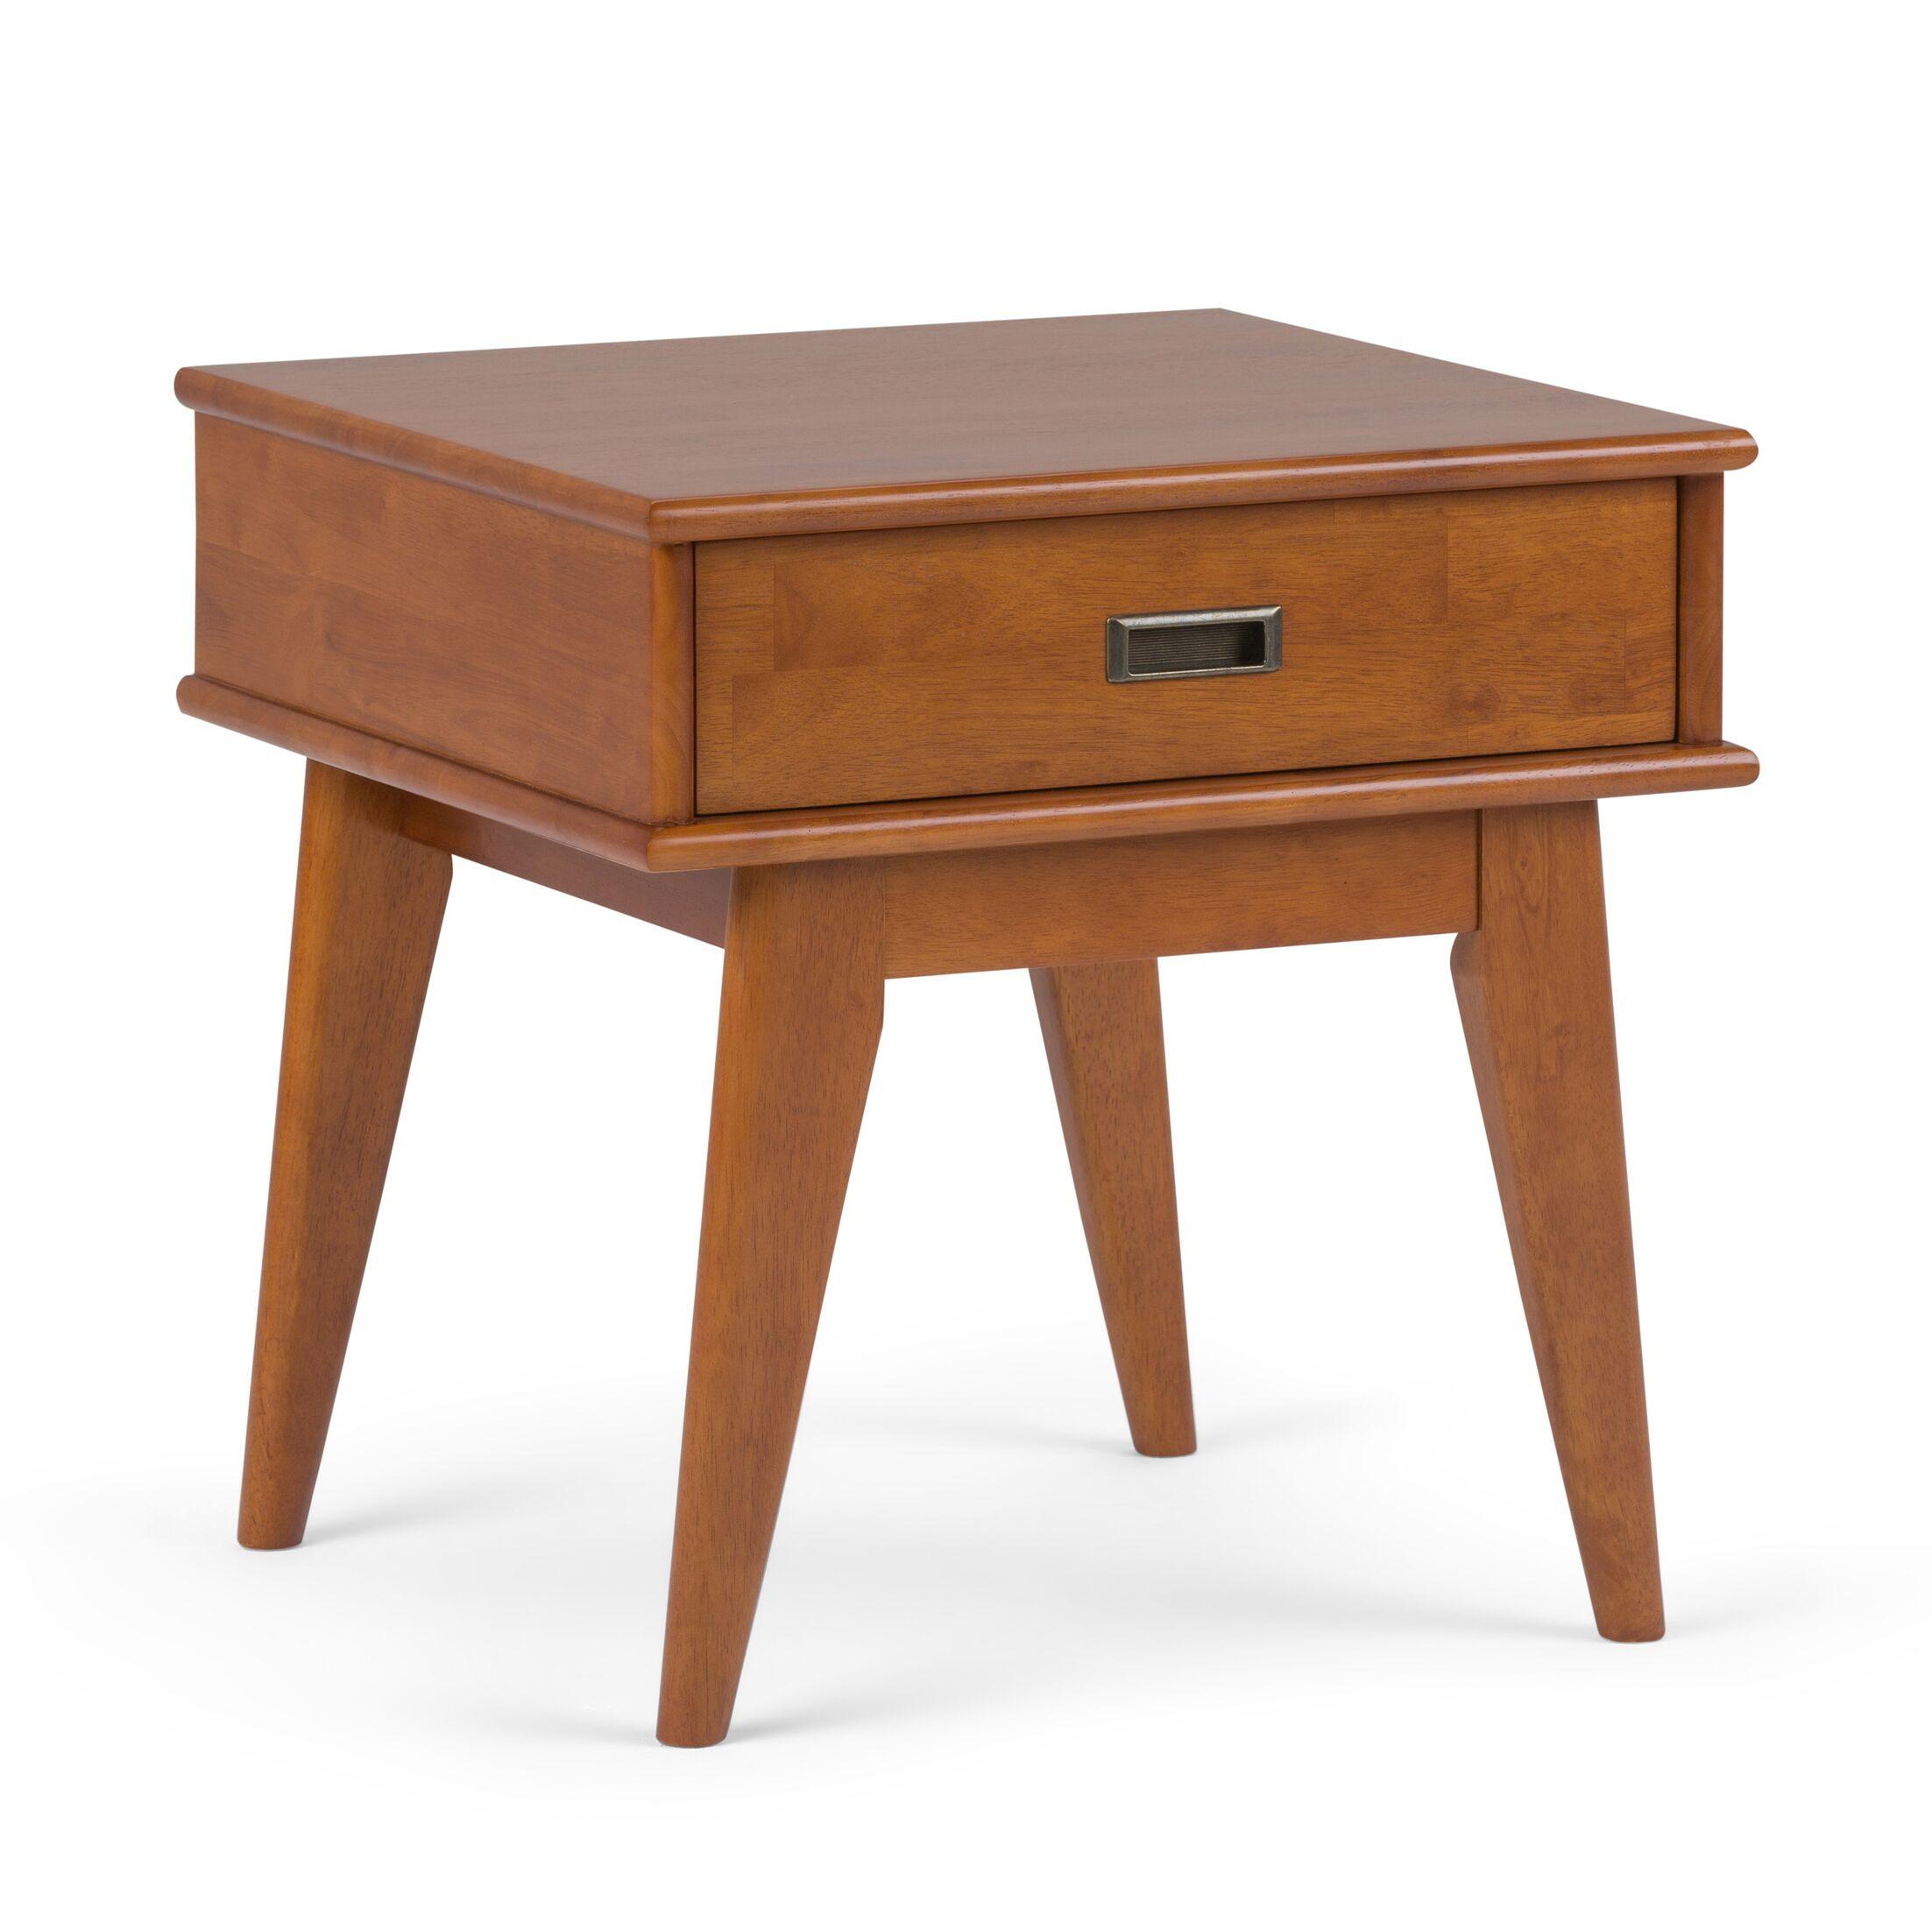 Draper End Table with Storage Color: Teak Brown